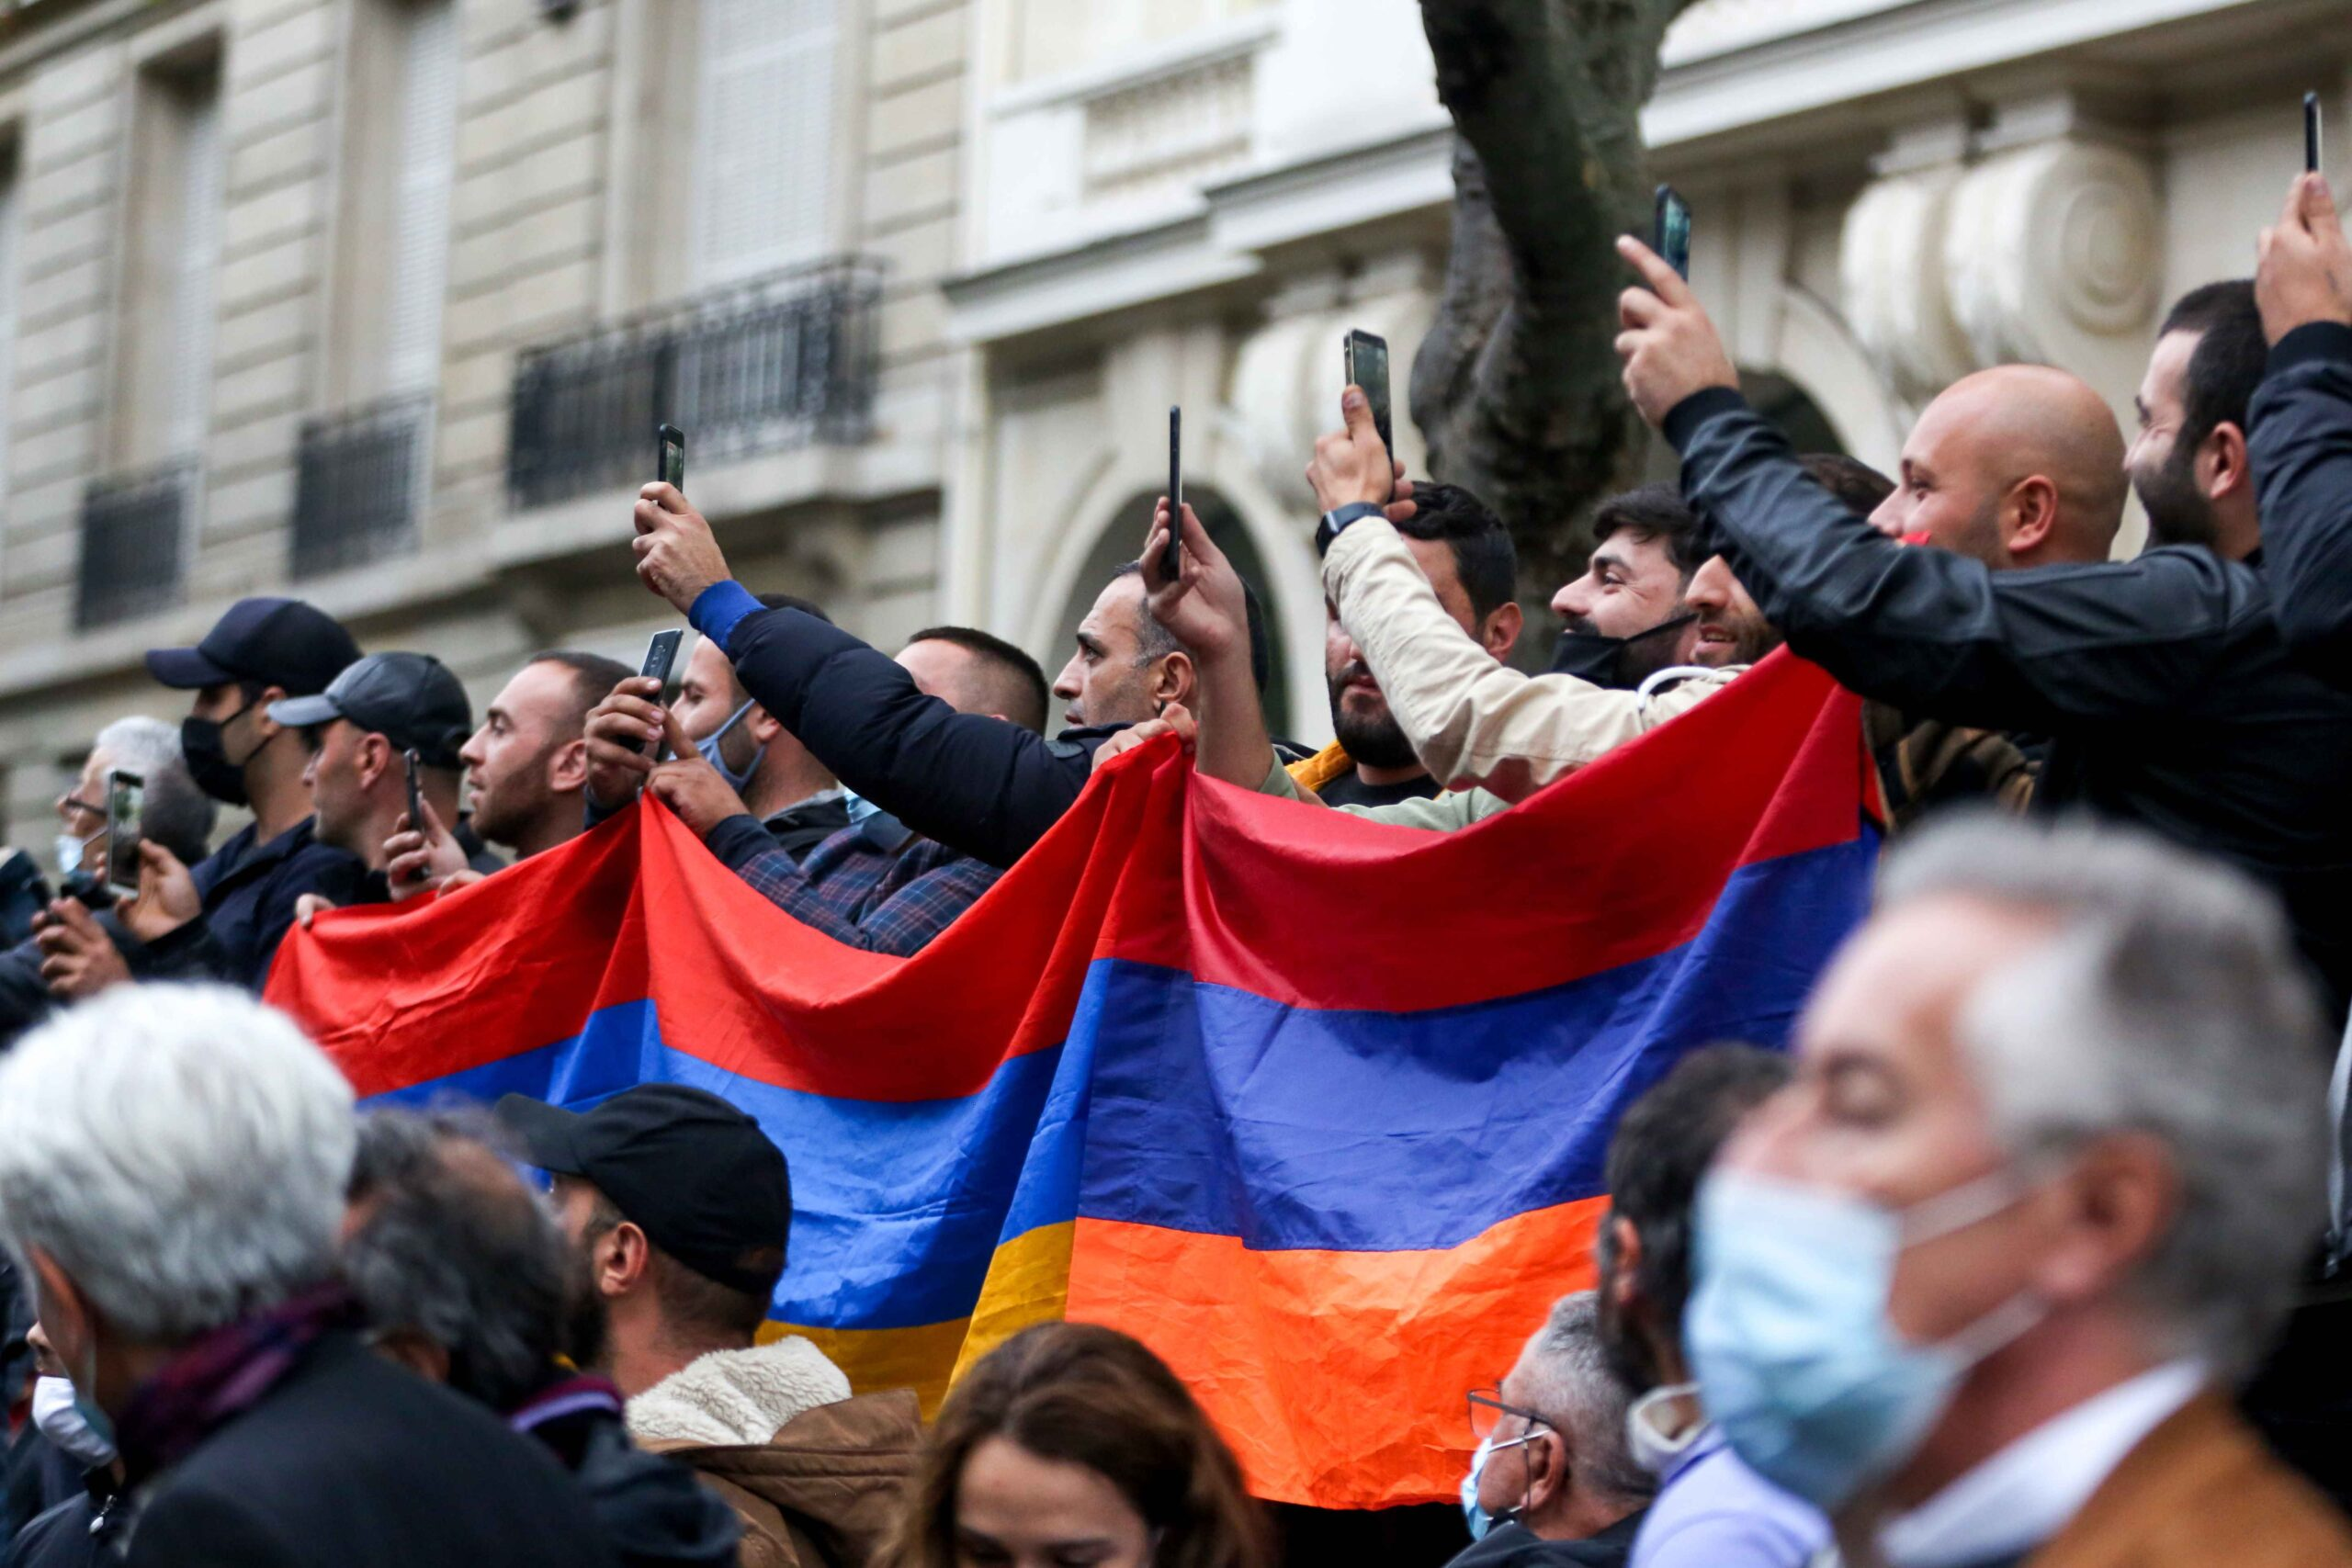 Men hold a flag of Armenia during a demonstration of Armenians in front of the Azerbayan ambassy in Paris, France, on September 29, 2020 against the Azerbayan attacks on Nagorno Karabakh.